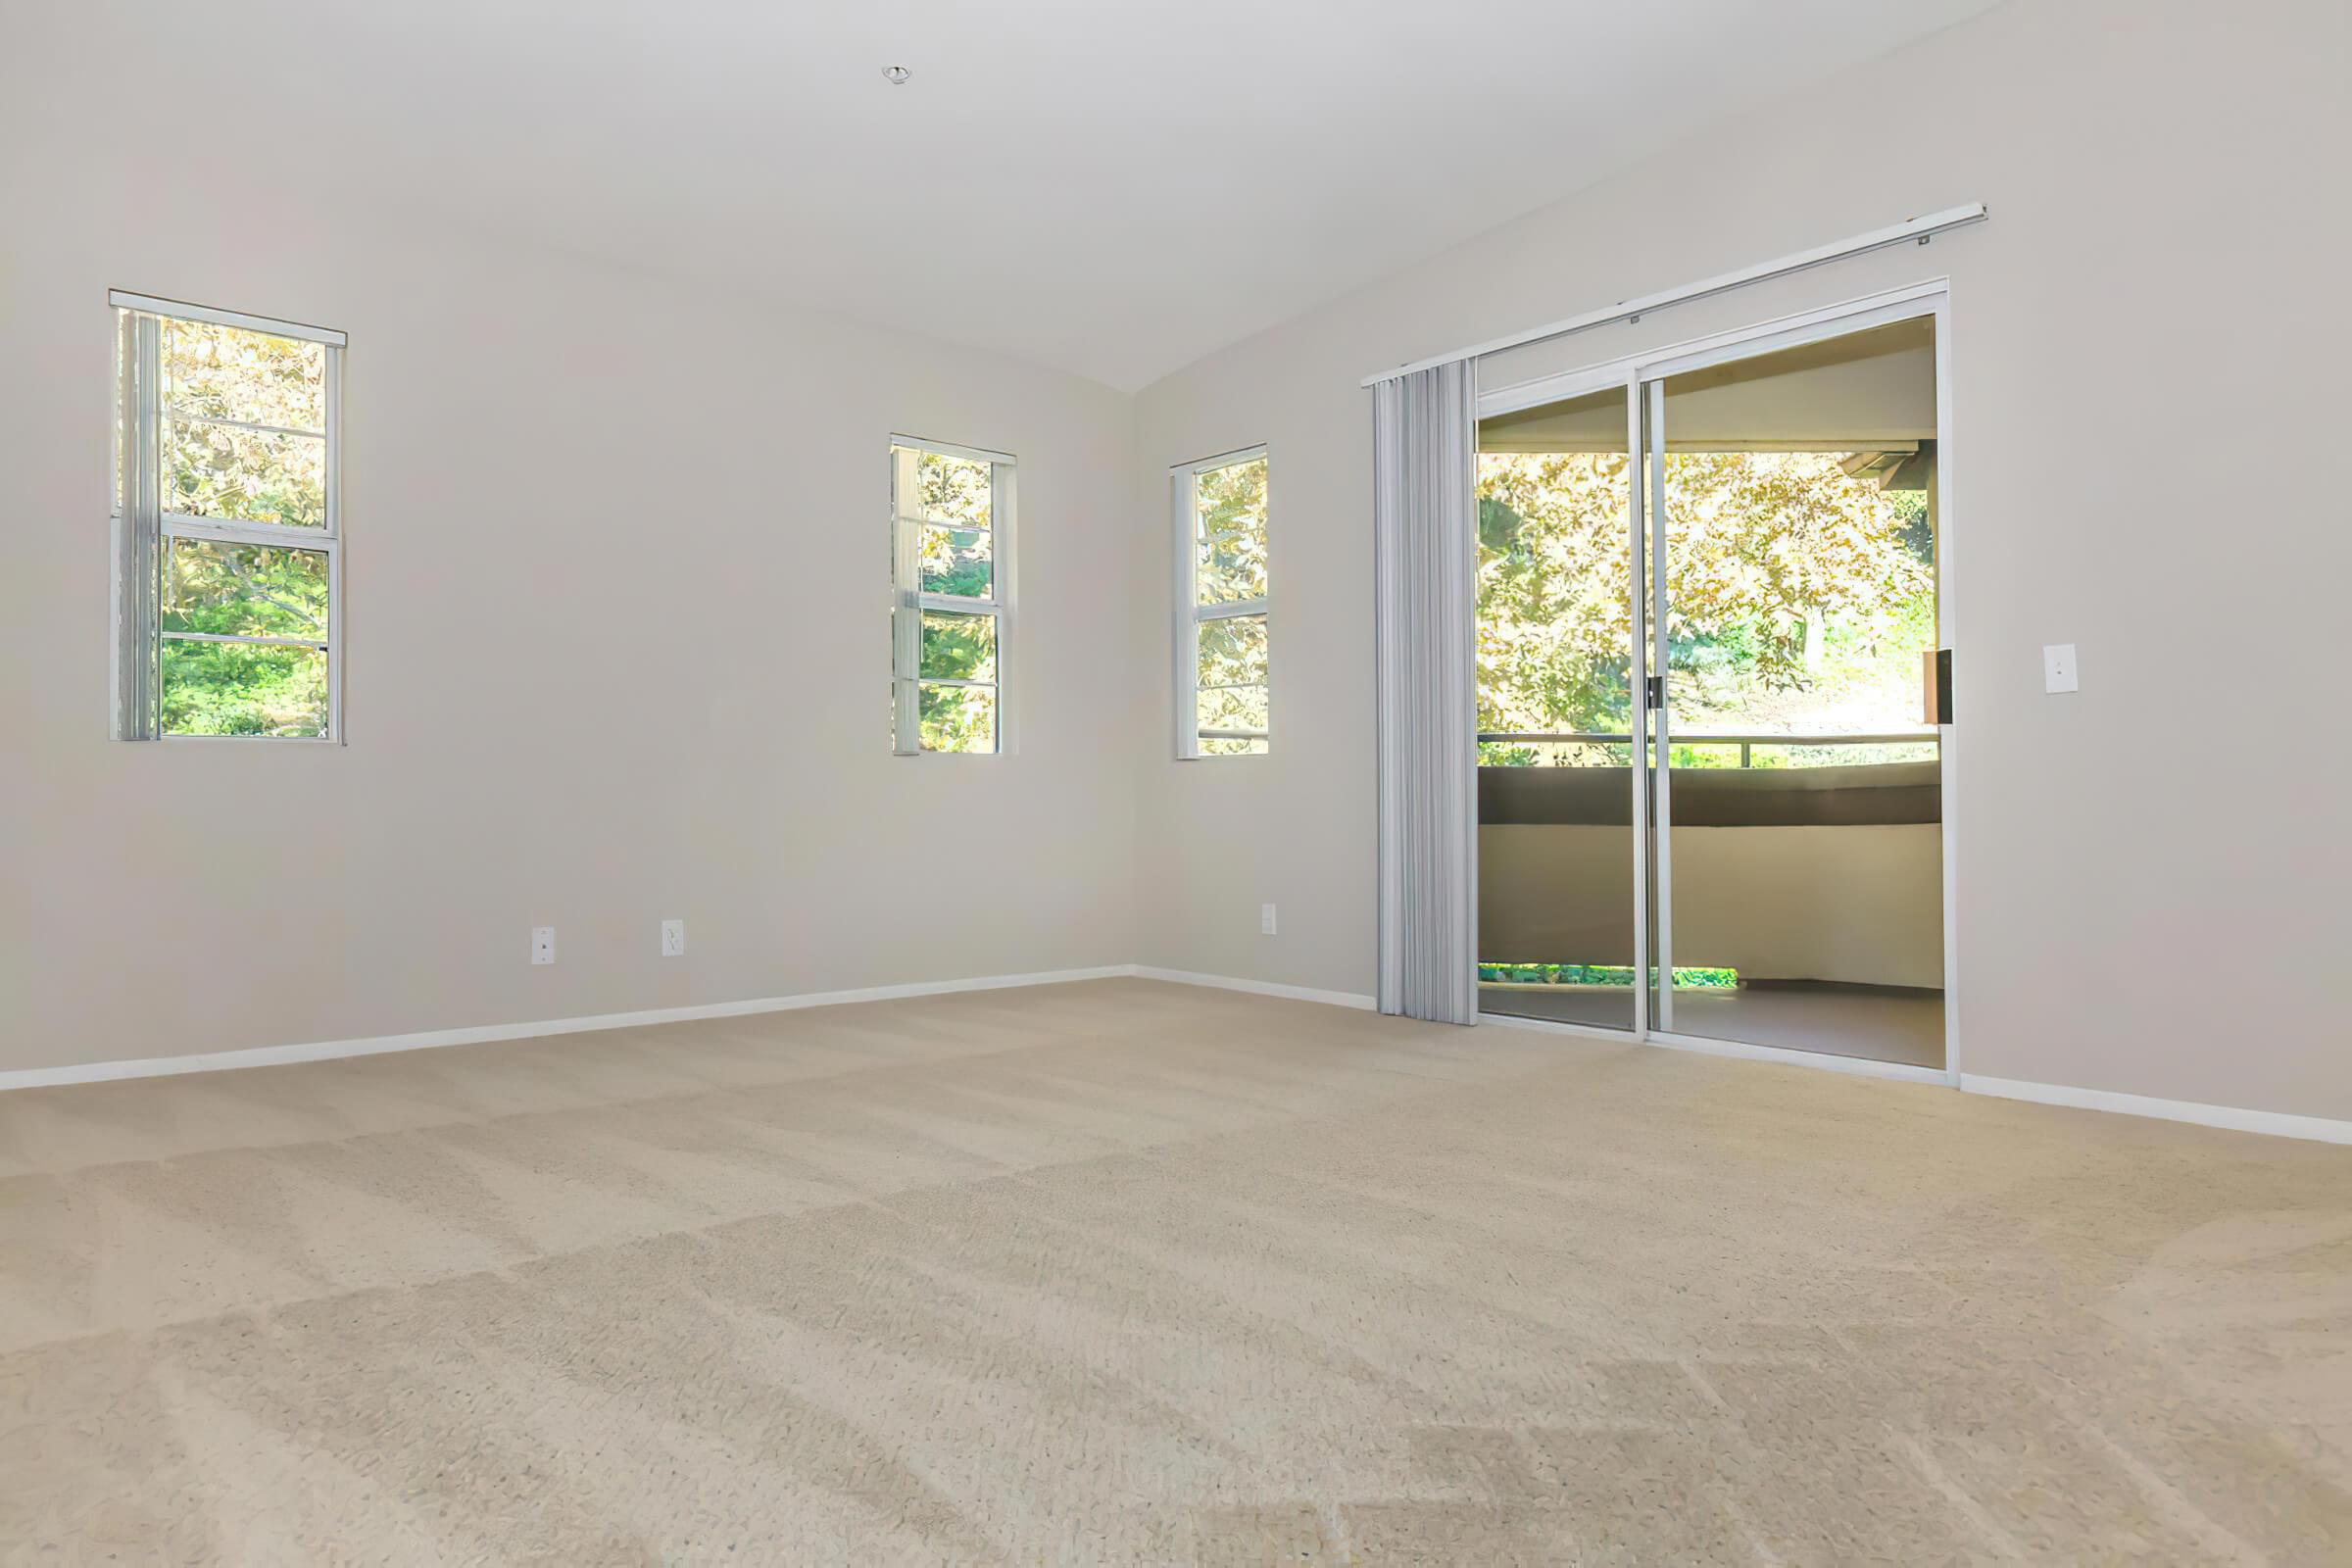 Vacant living room with sliding glass doors